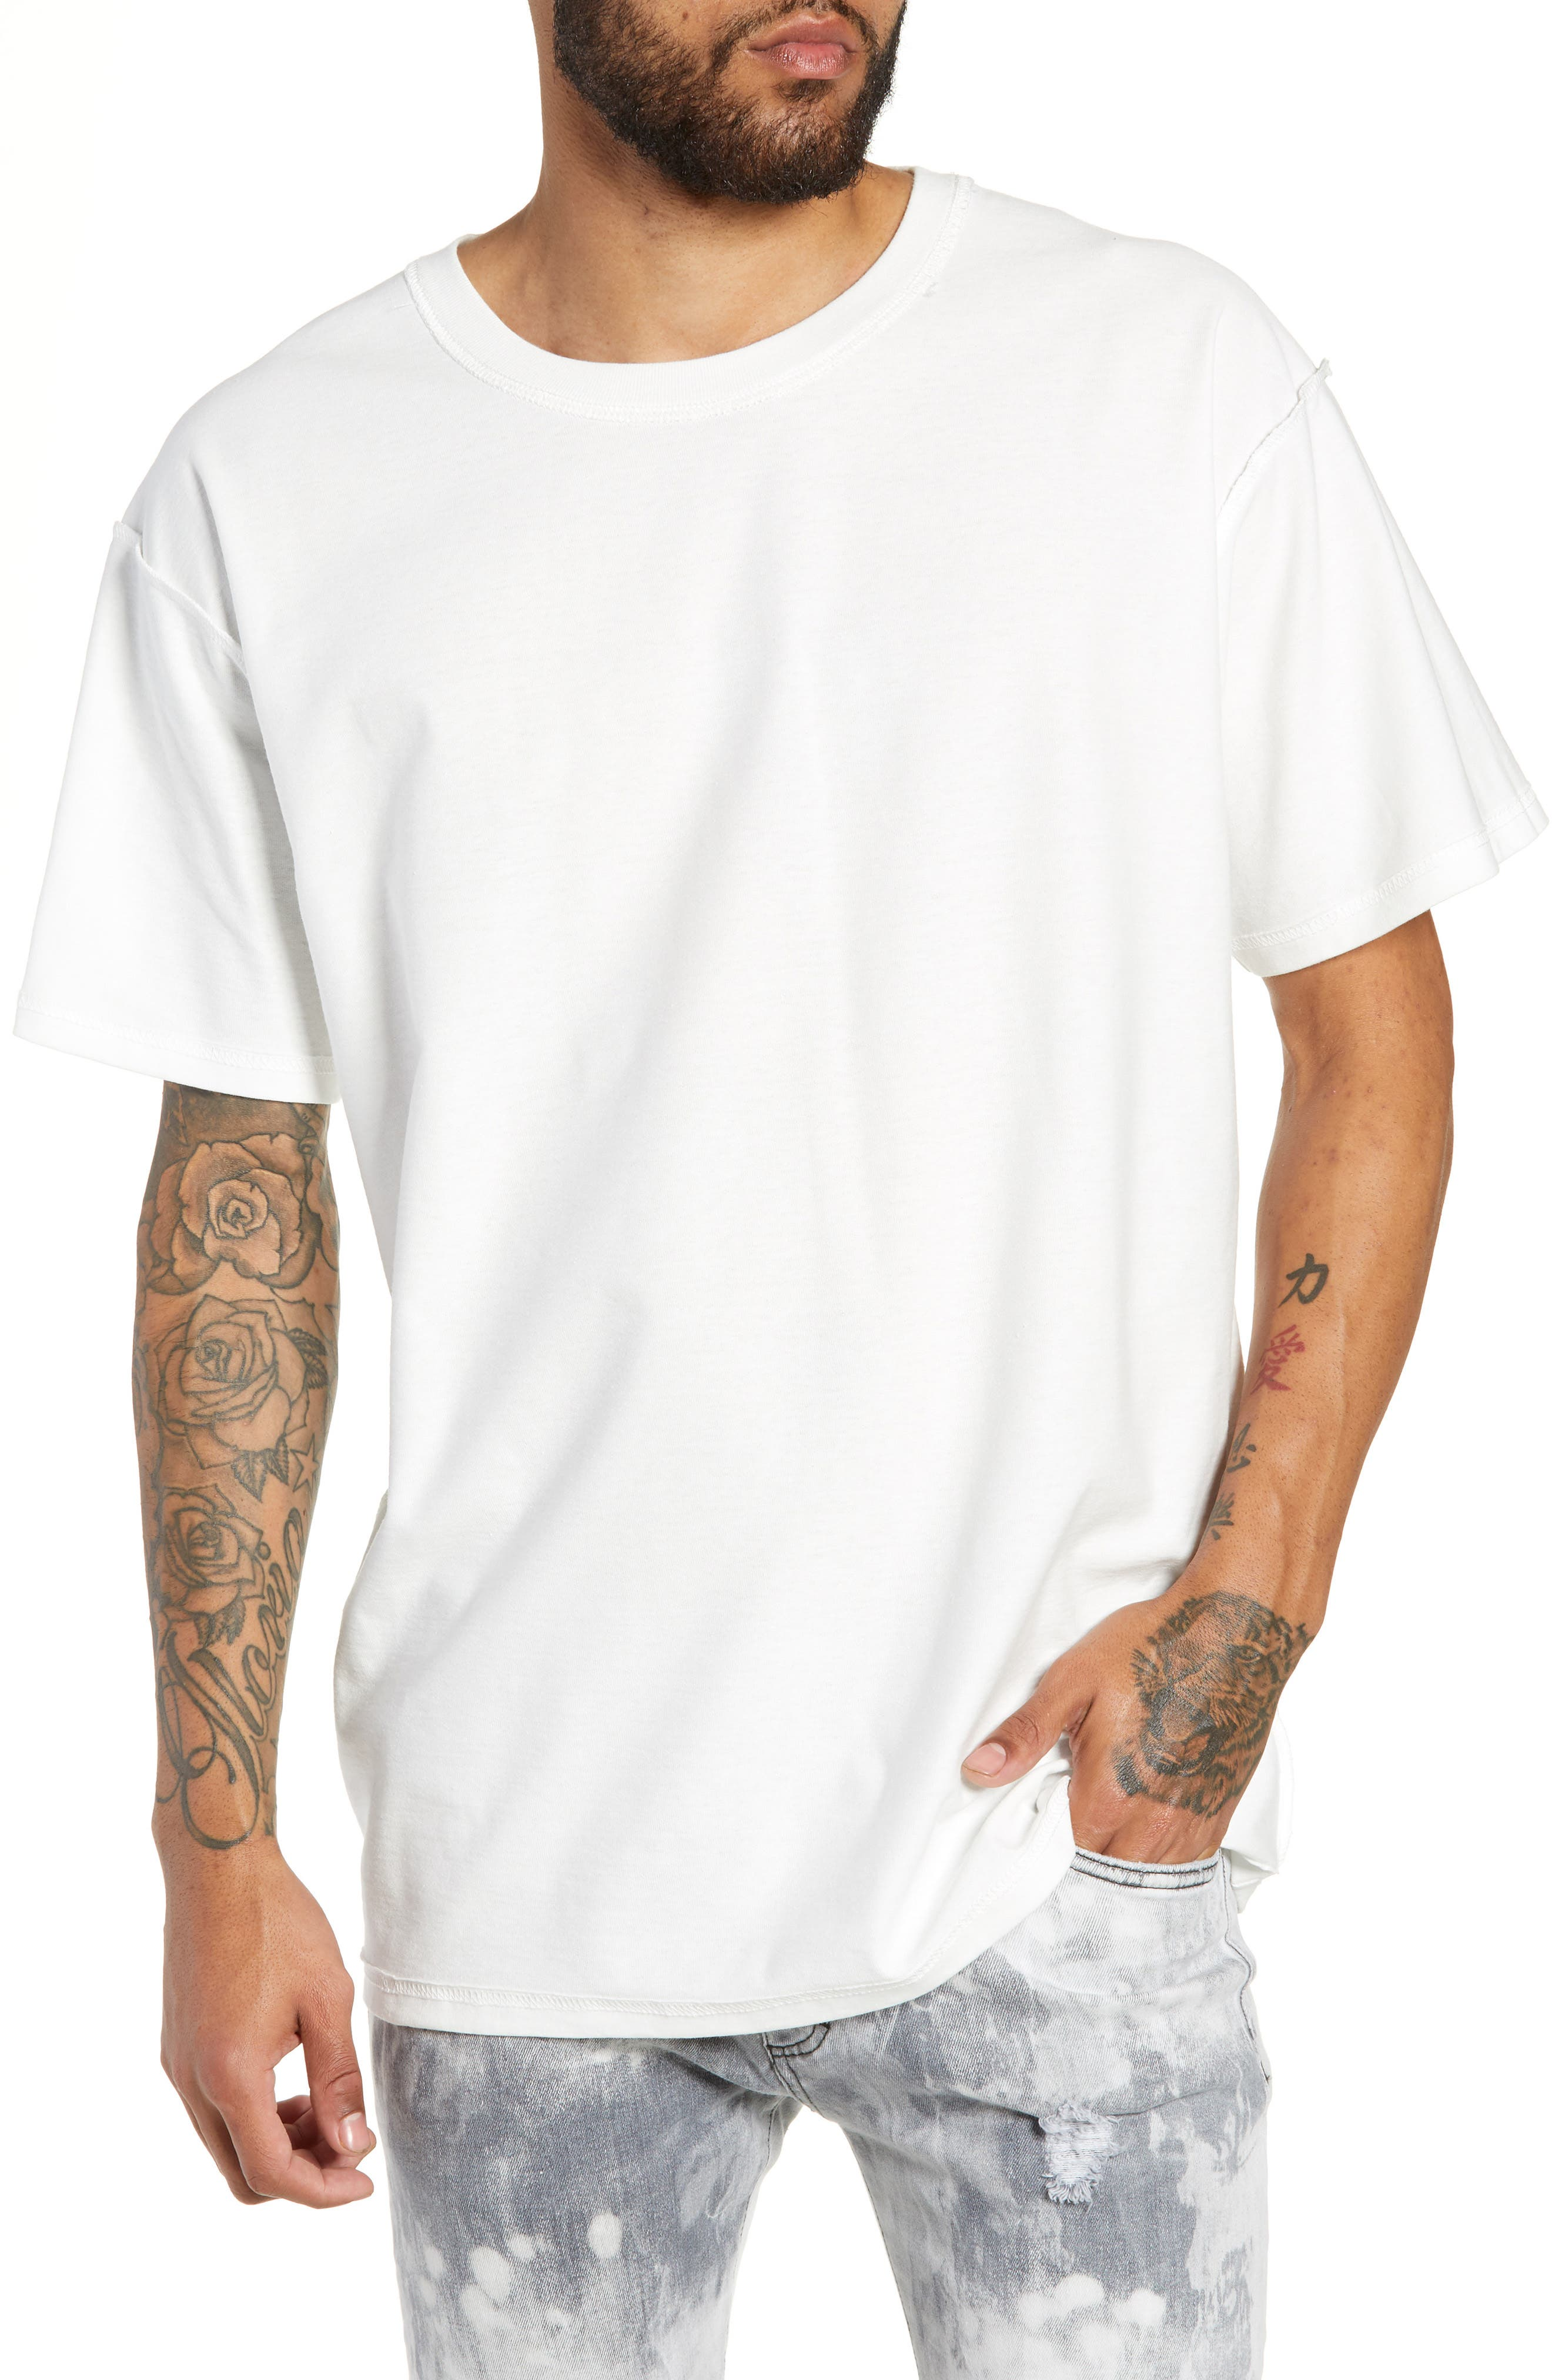 Stand Firm Tour T-Shirt,                             Main thumbnail 1, color,                             WHITE